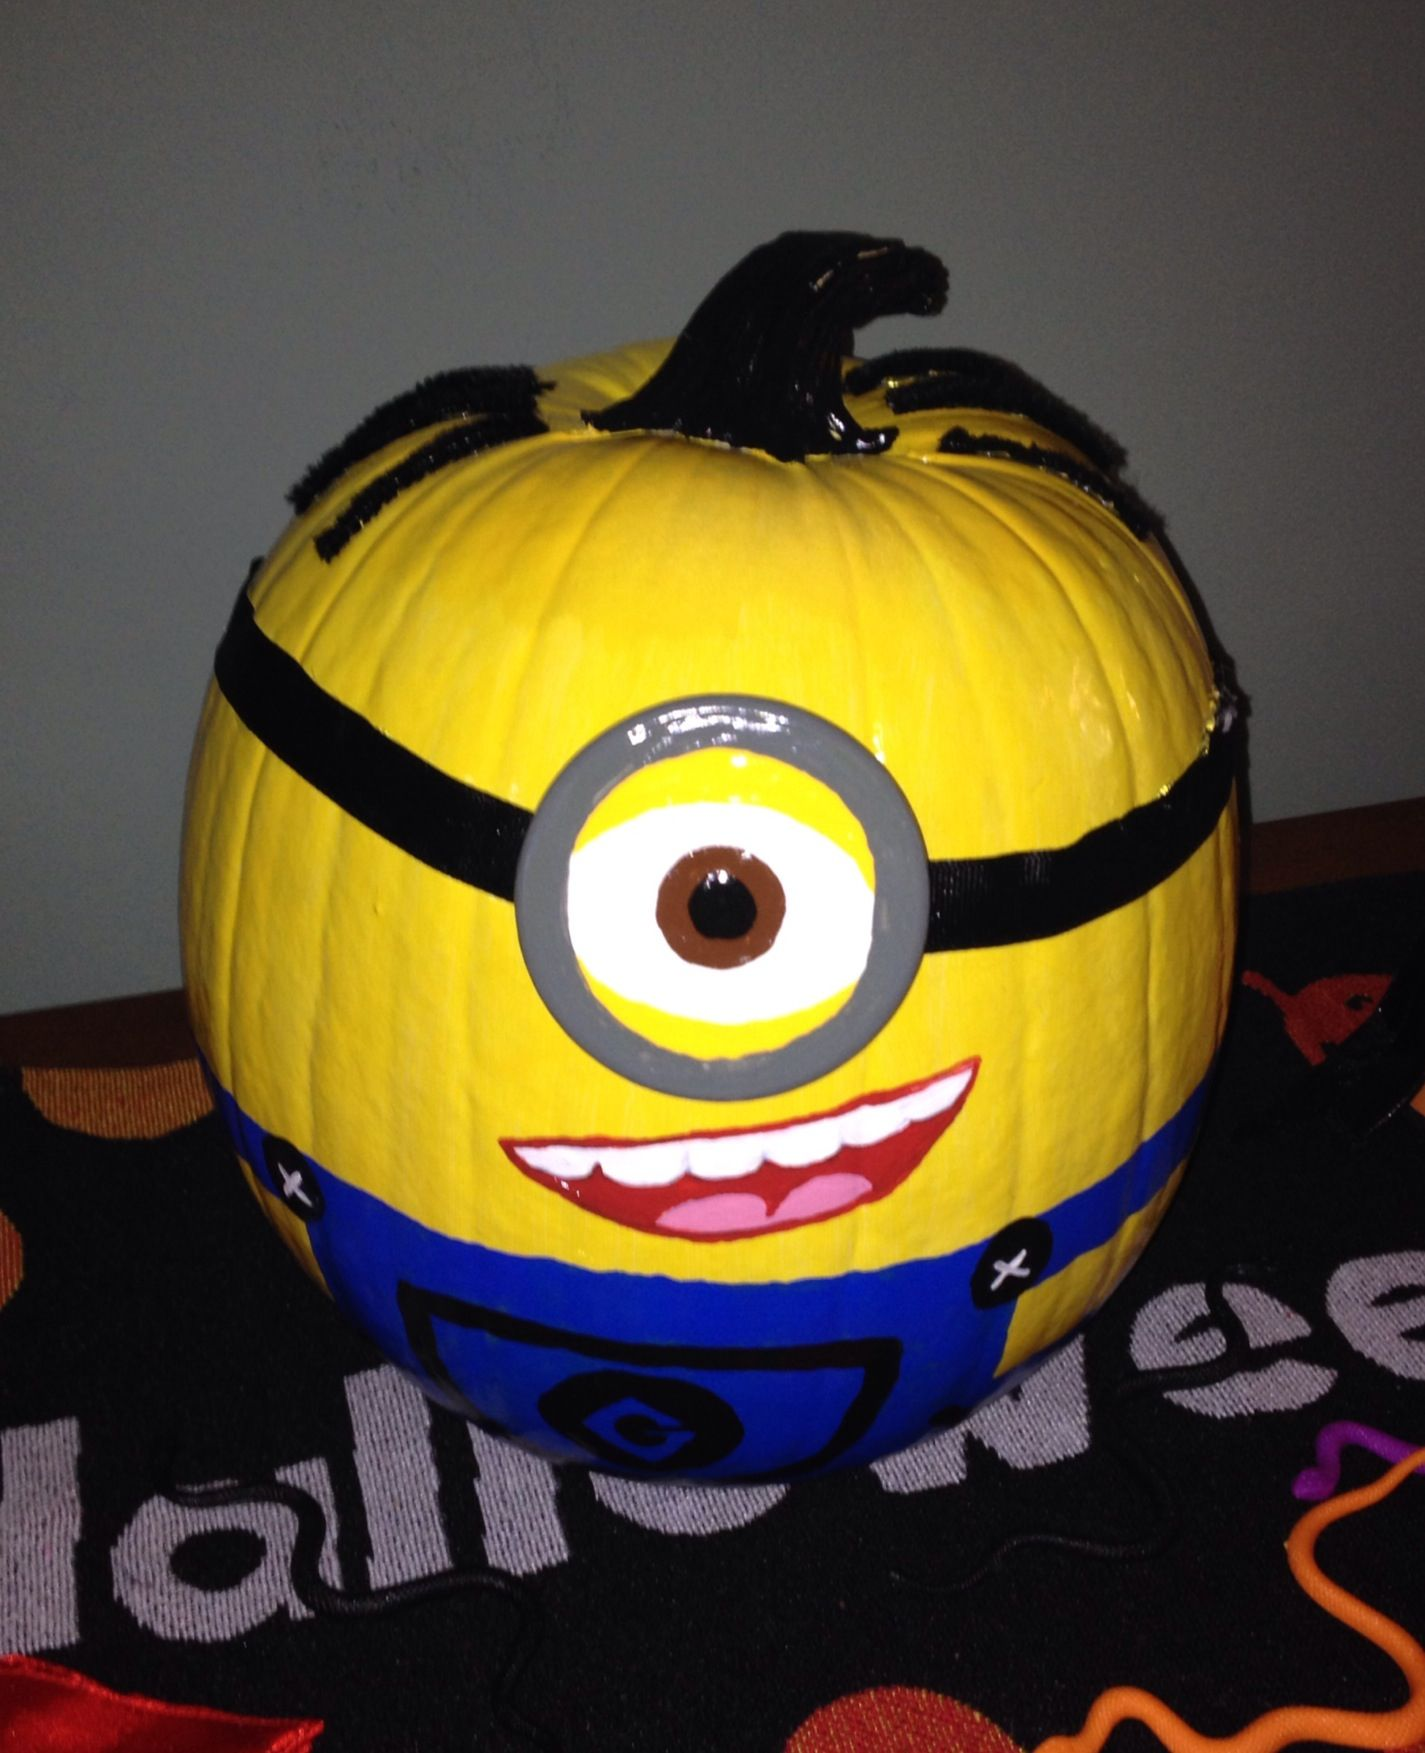 Painting Pumpkins & Carving Pumpkins Using Minions from Despicable Me. Will minions ever go away? Probably not, much like The Simpsons they appear to be here forever and with their pumpkin-like body shape they are a perfect model for carving minion pumpkins or painting minion pumpkins.